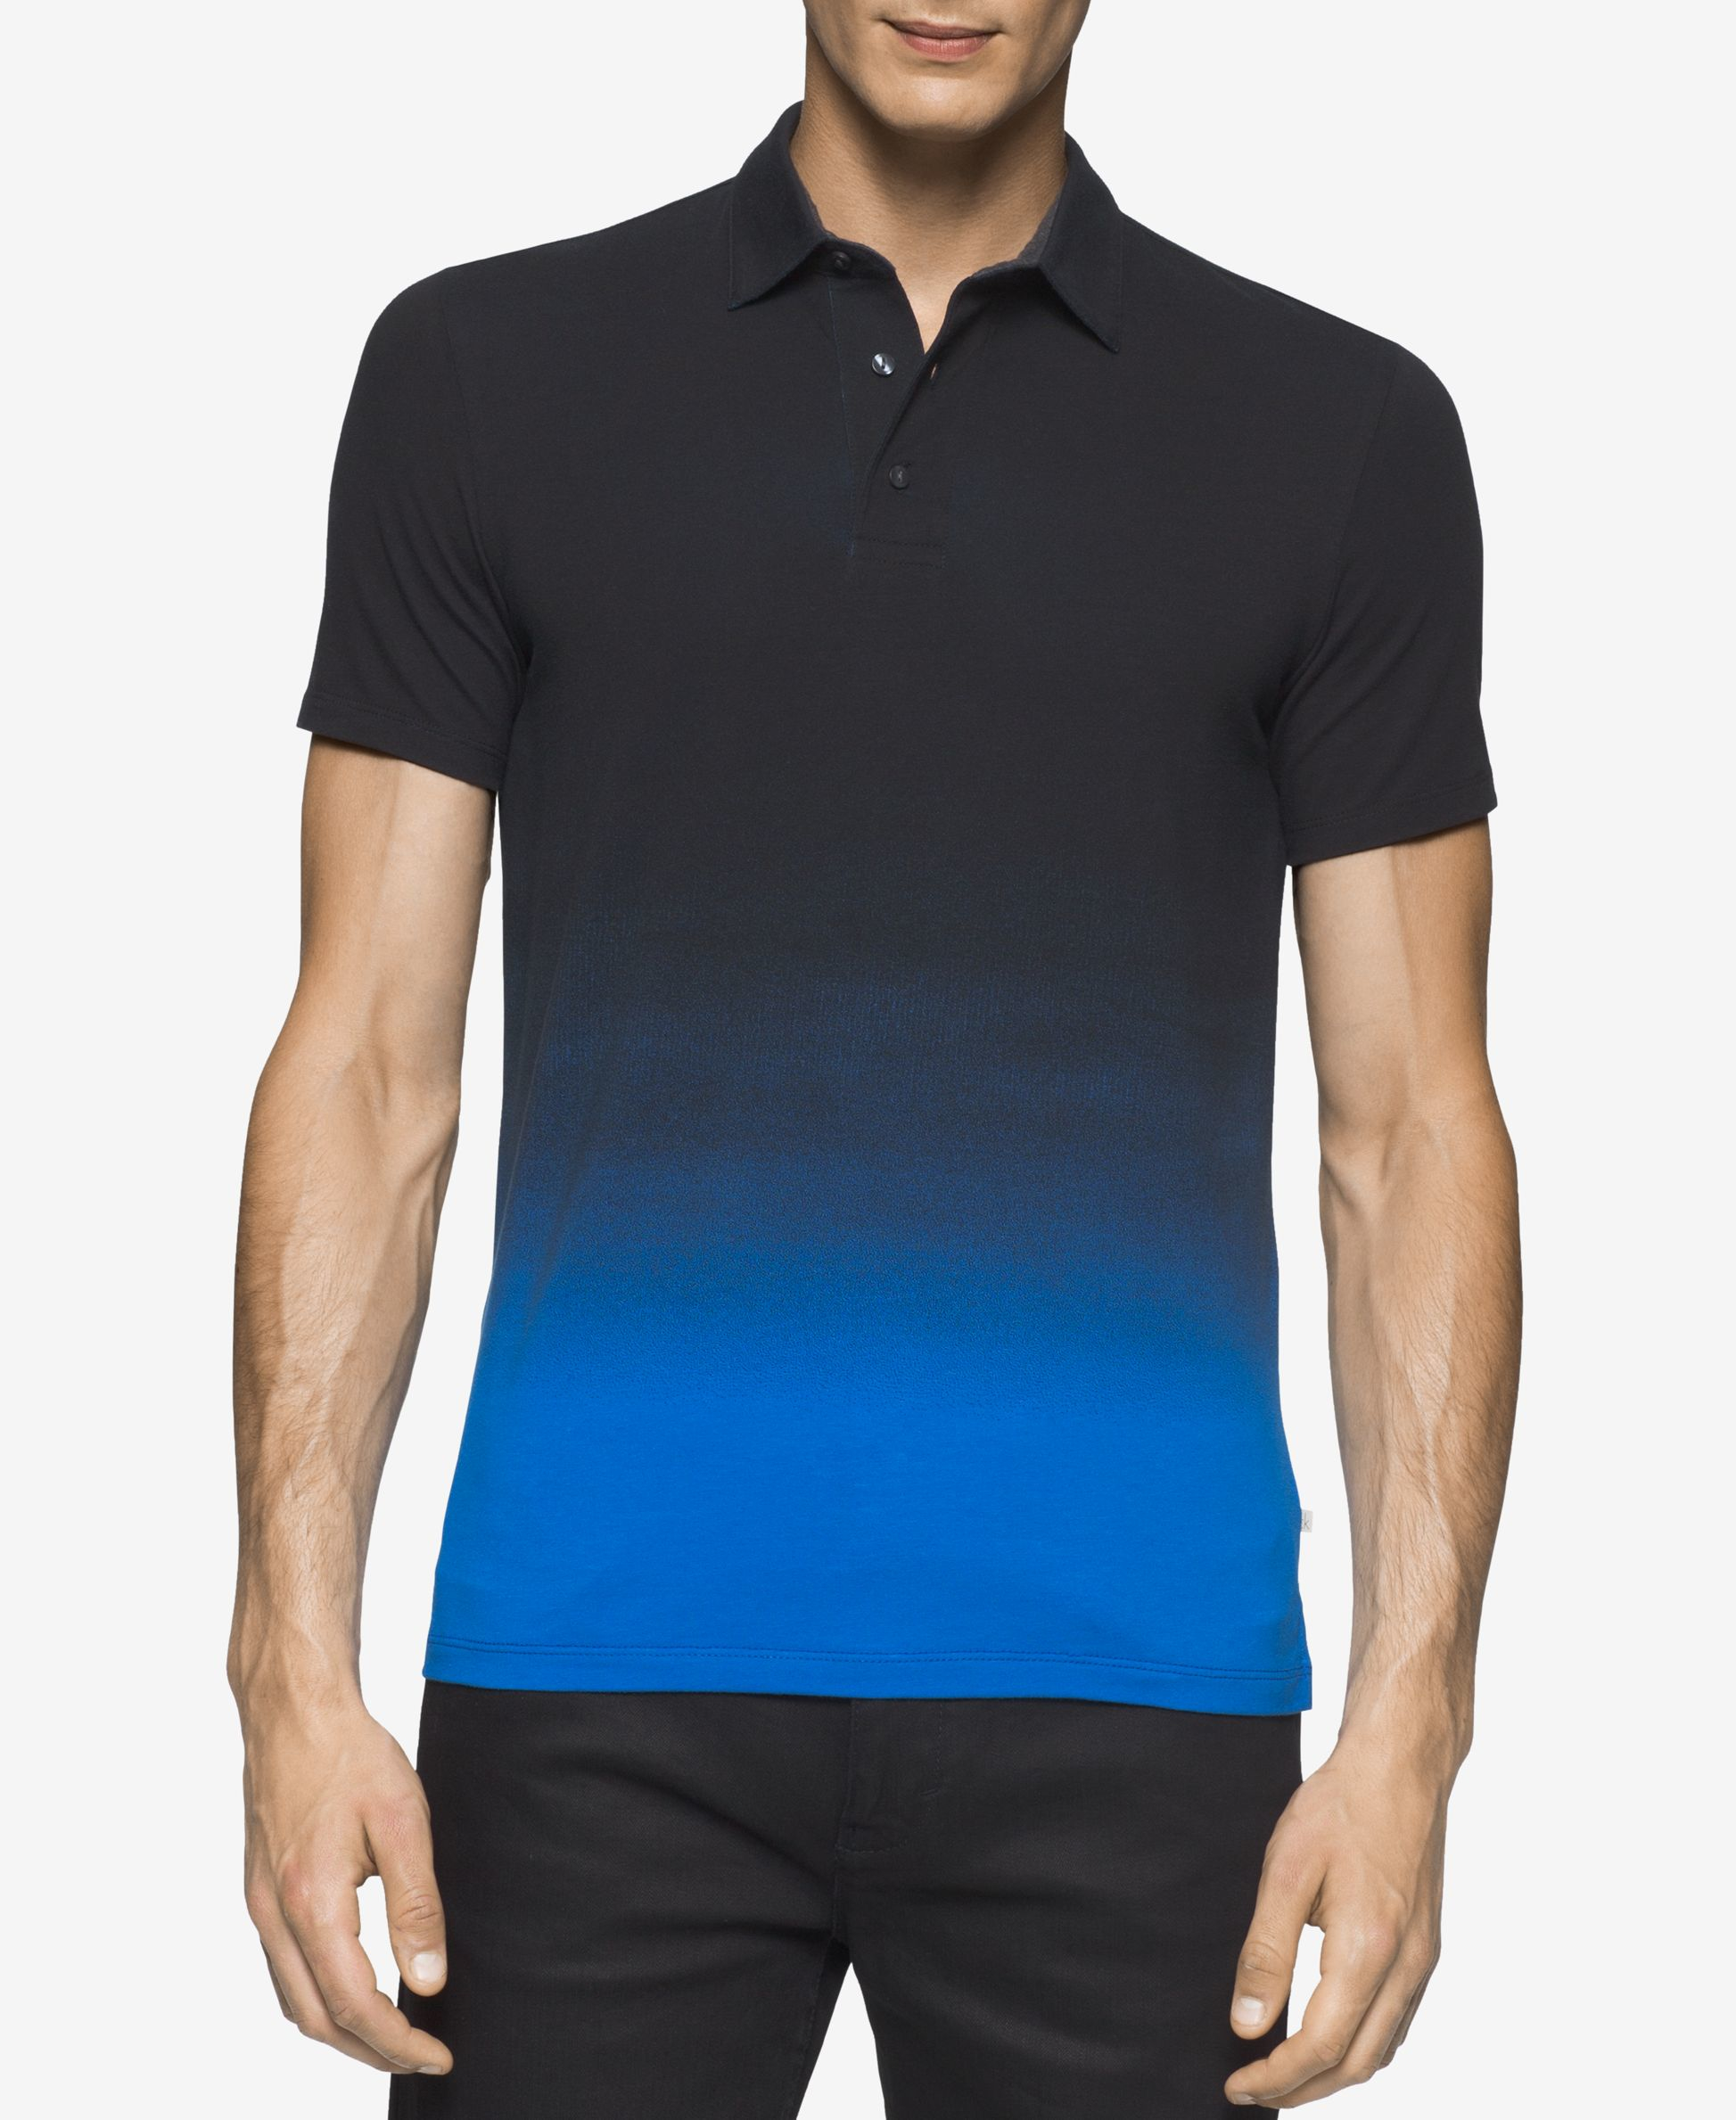 Spandex T Shirts For Men